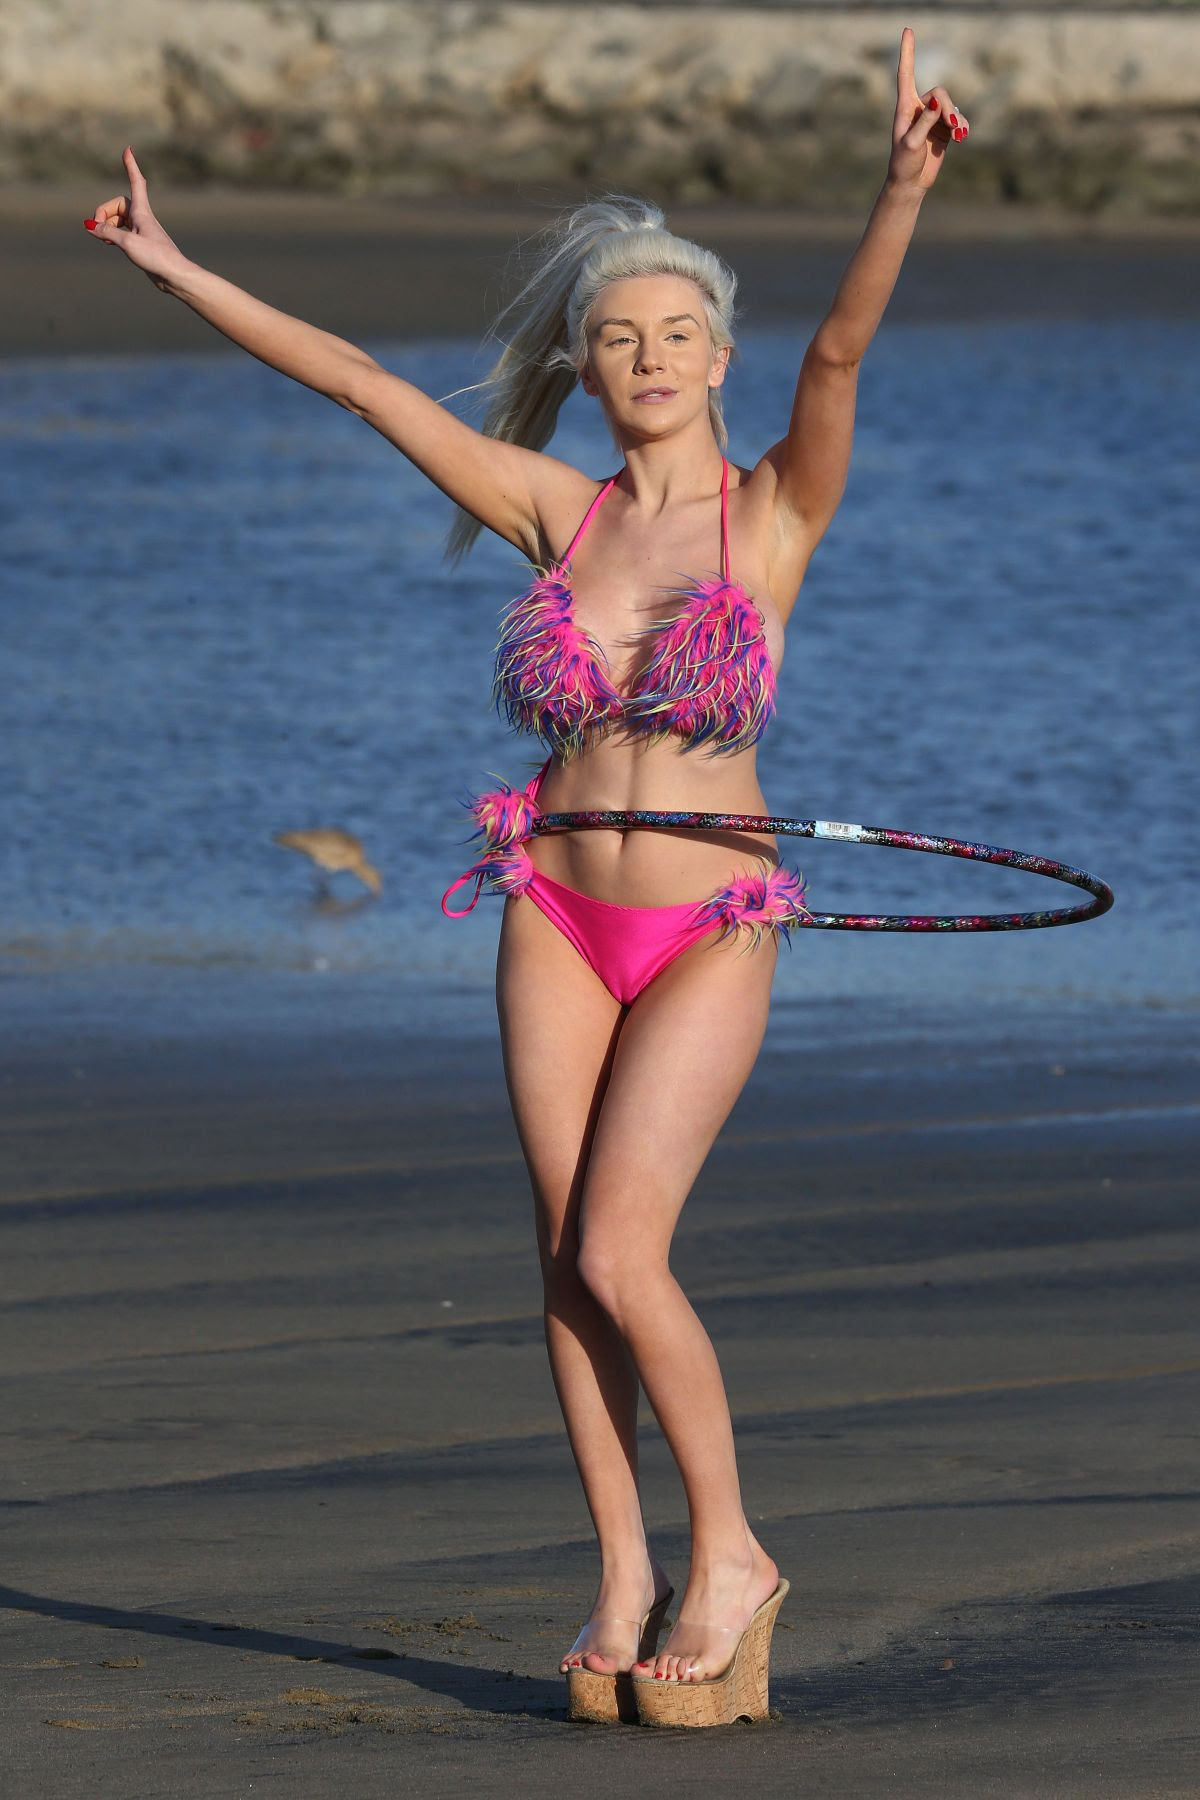 COURTNEY STODDEN in Bikini and Hula Hoop at a Beach in Los Angeles 03/23/2016